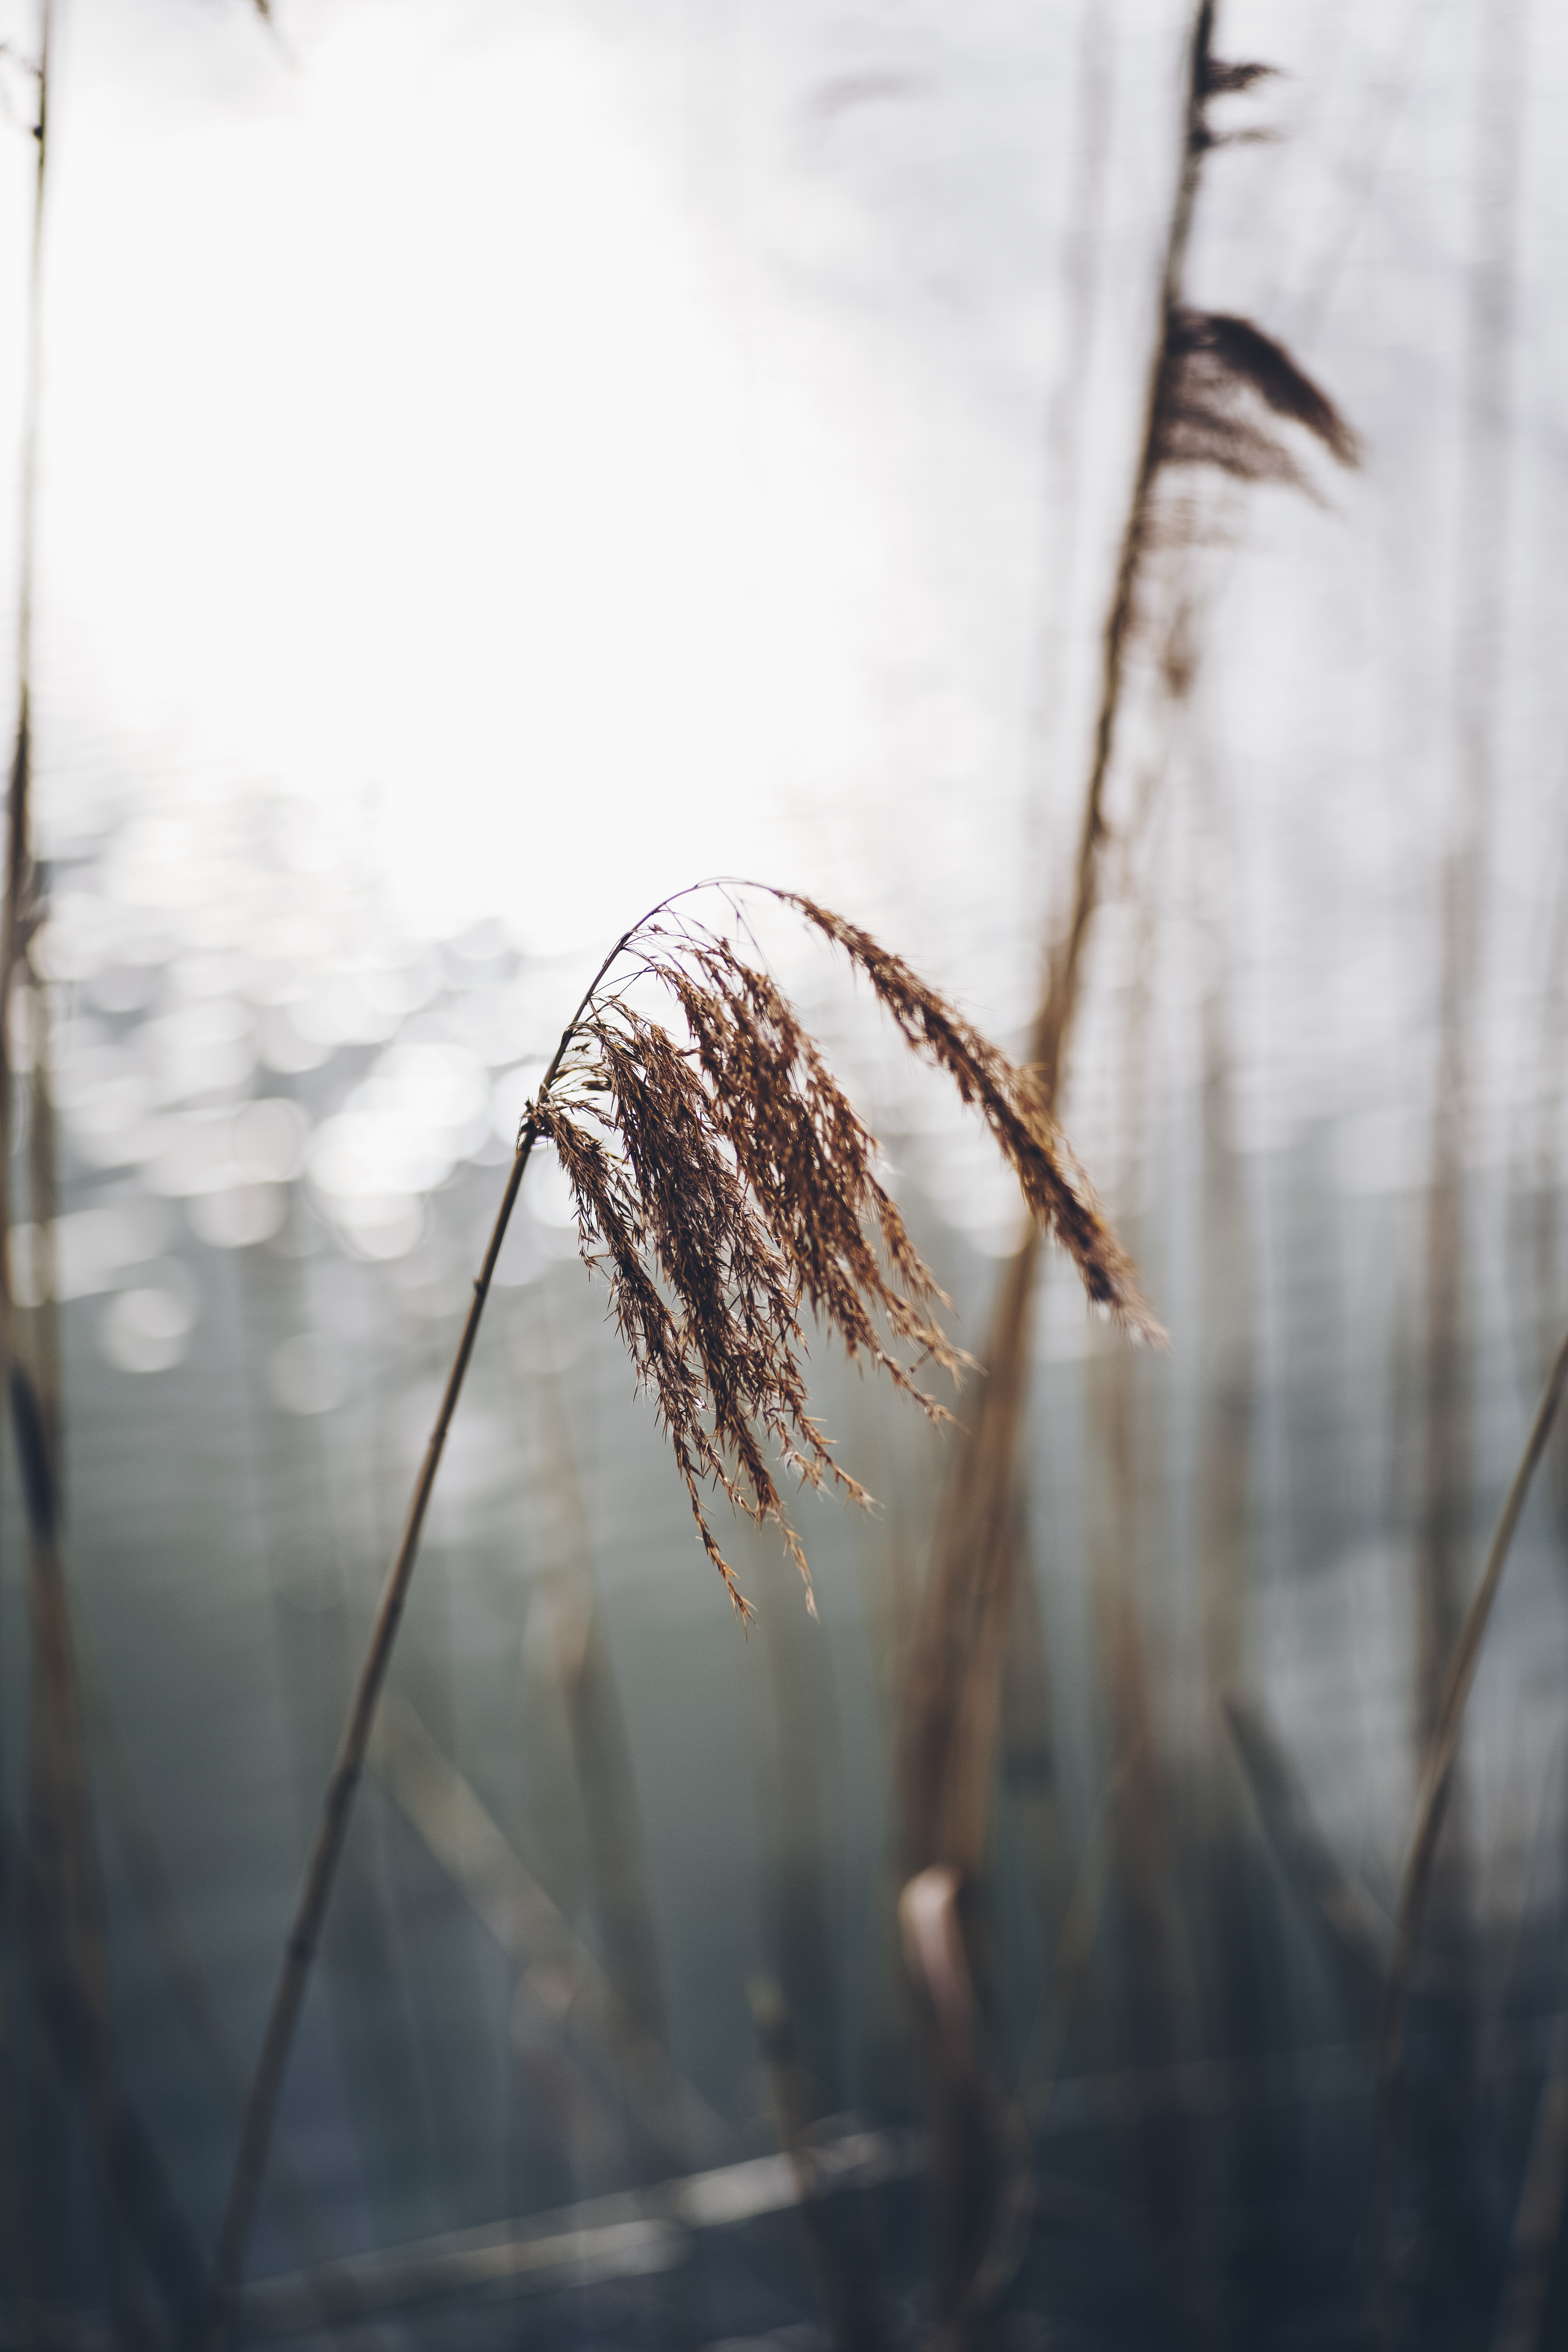 View of Brown Grasses